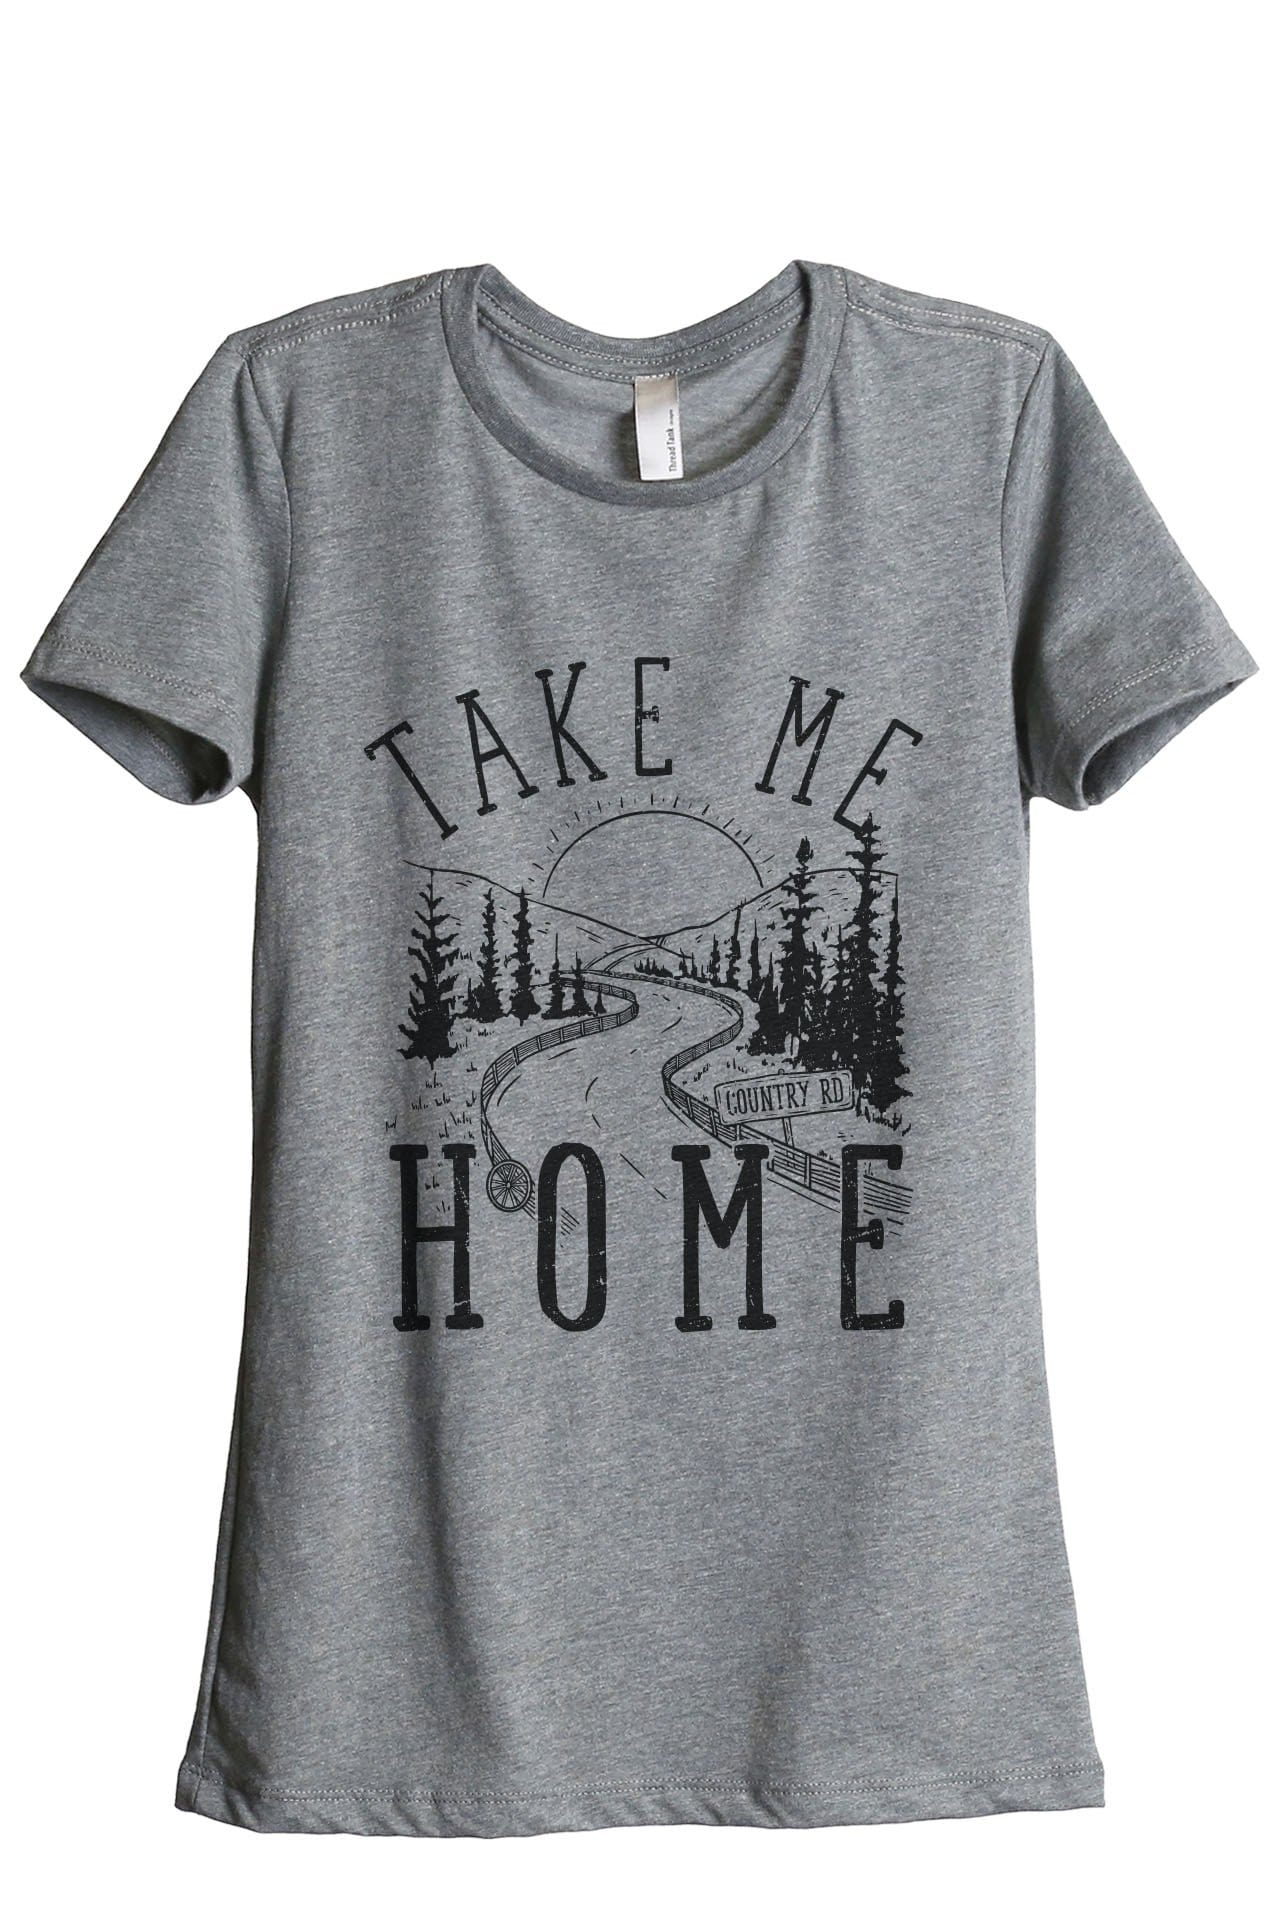 Take Me Home Country Road Women's Relaxed Crewneck T-Shirt Top Tee Charcoal Grey